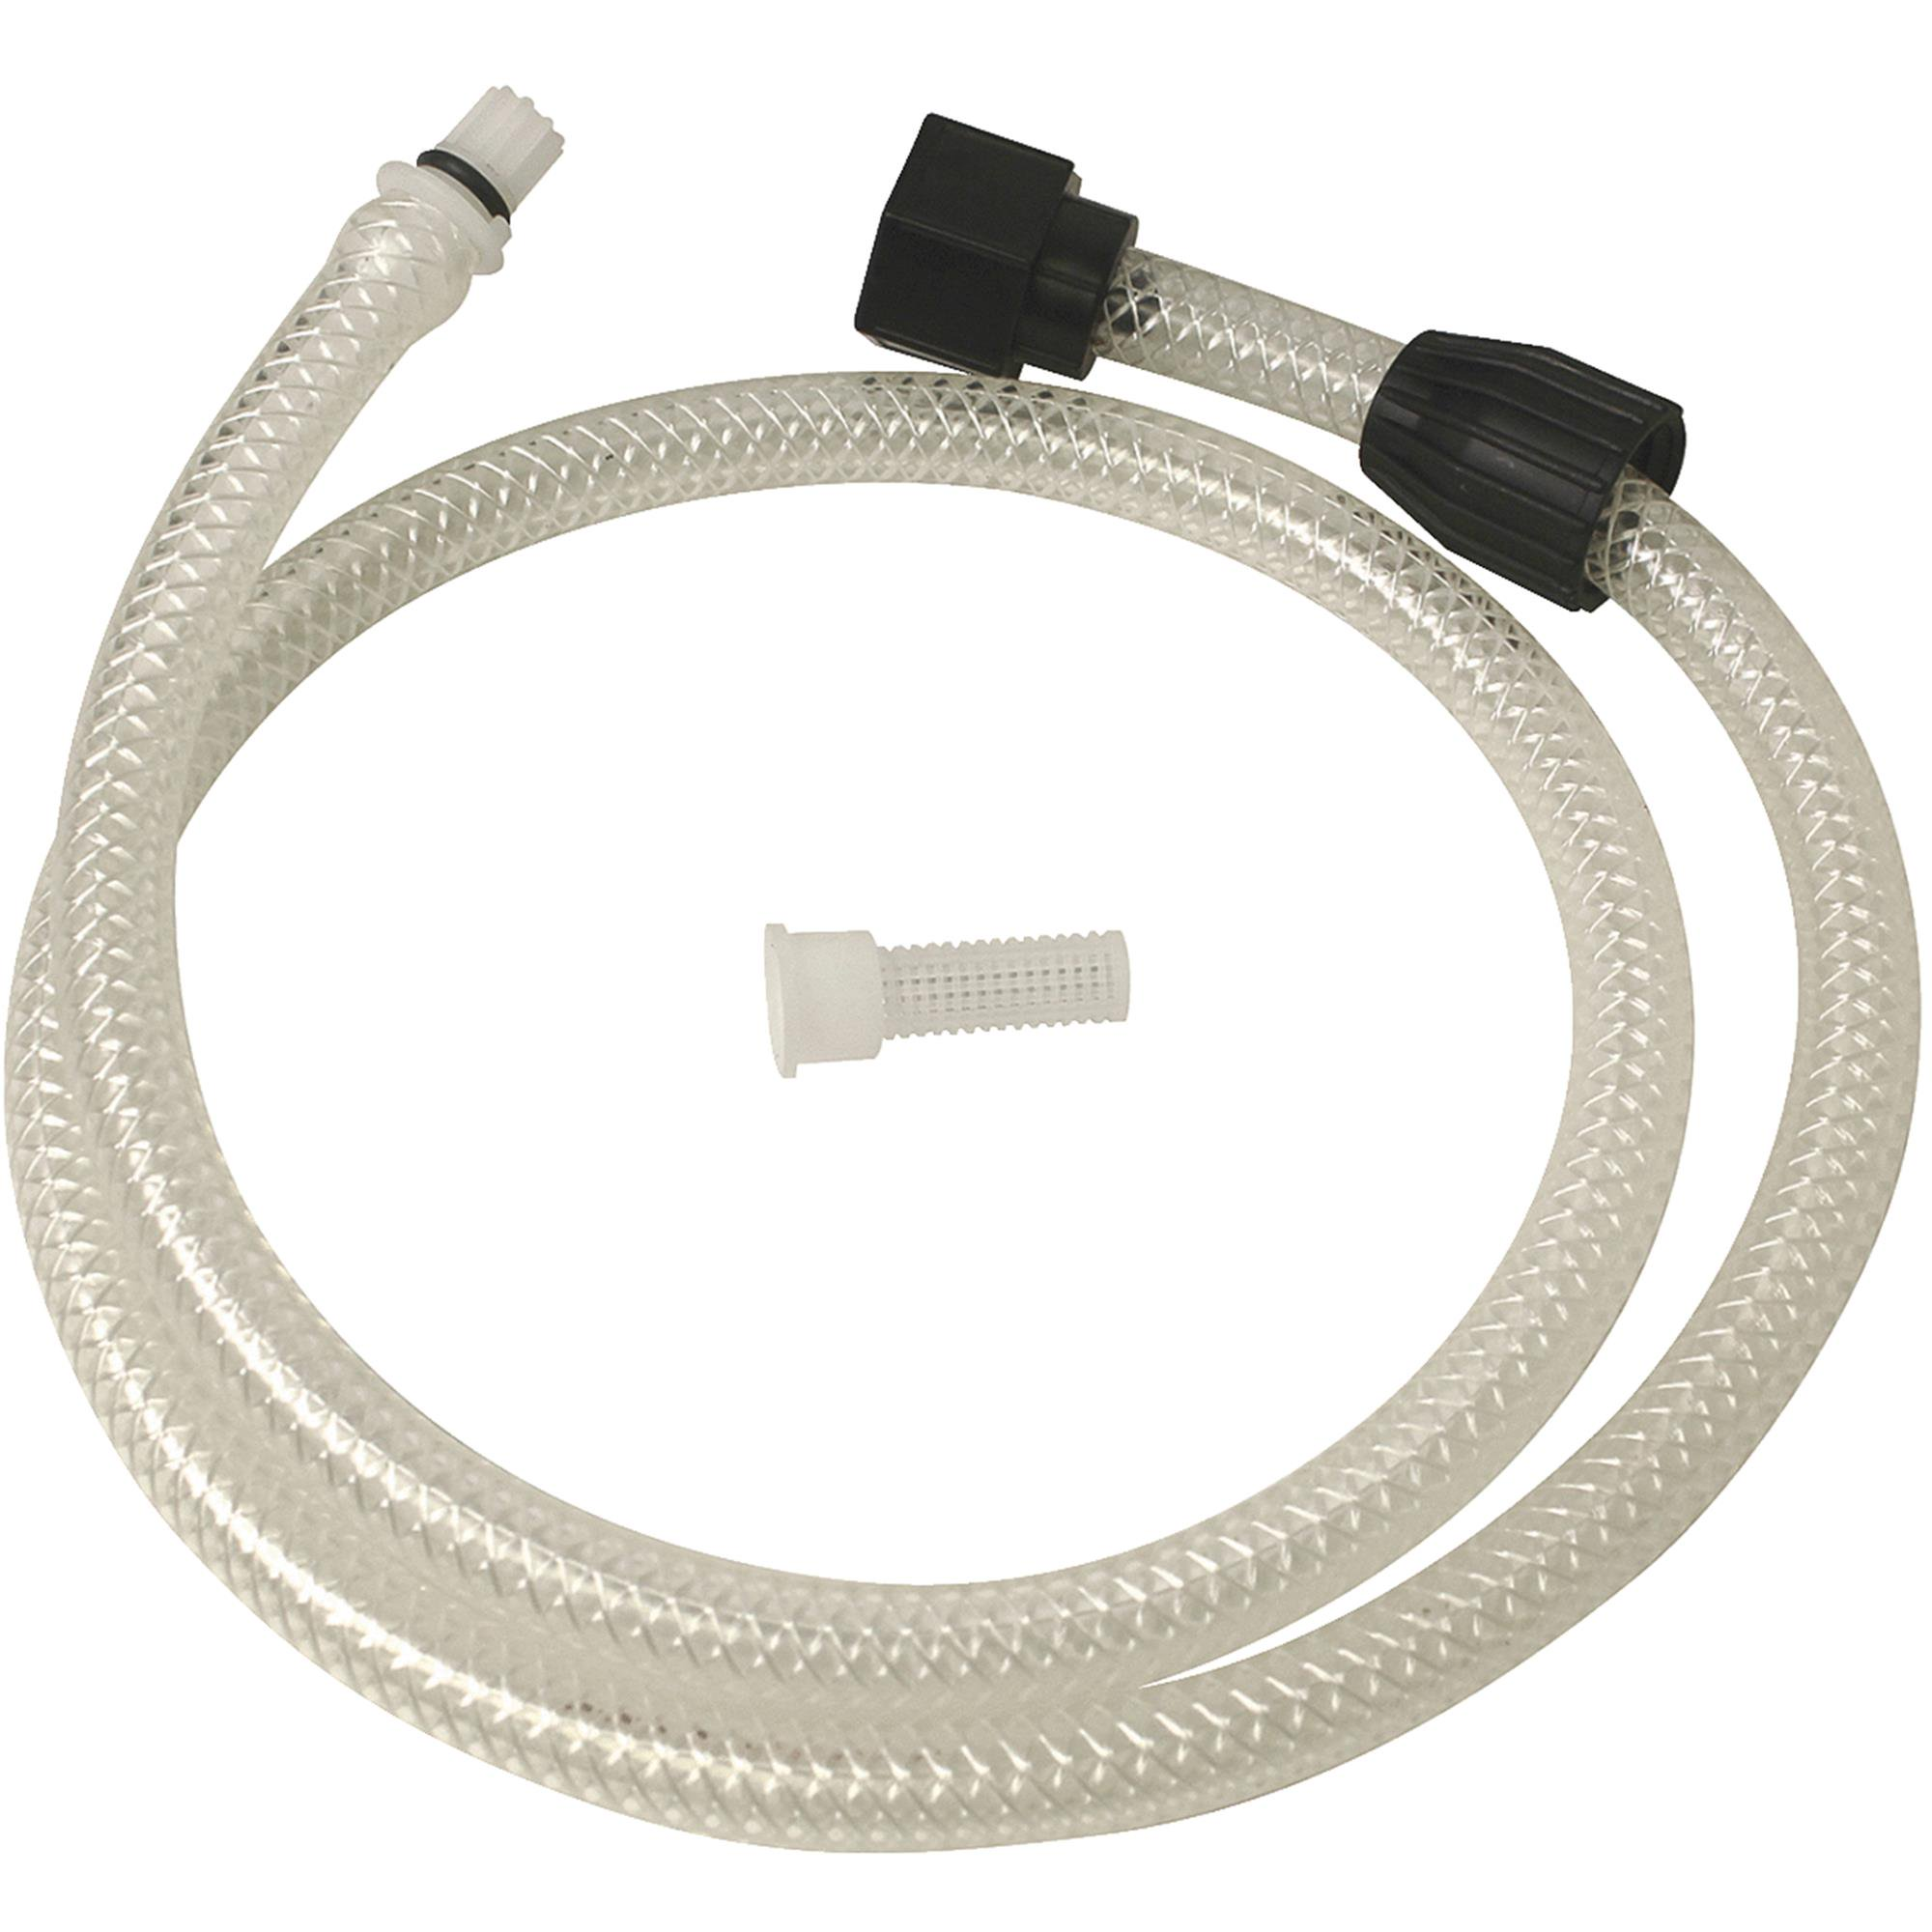 Chapin Replacement Braided Sprayer Hose Kit by Chapin